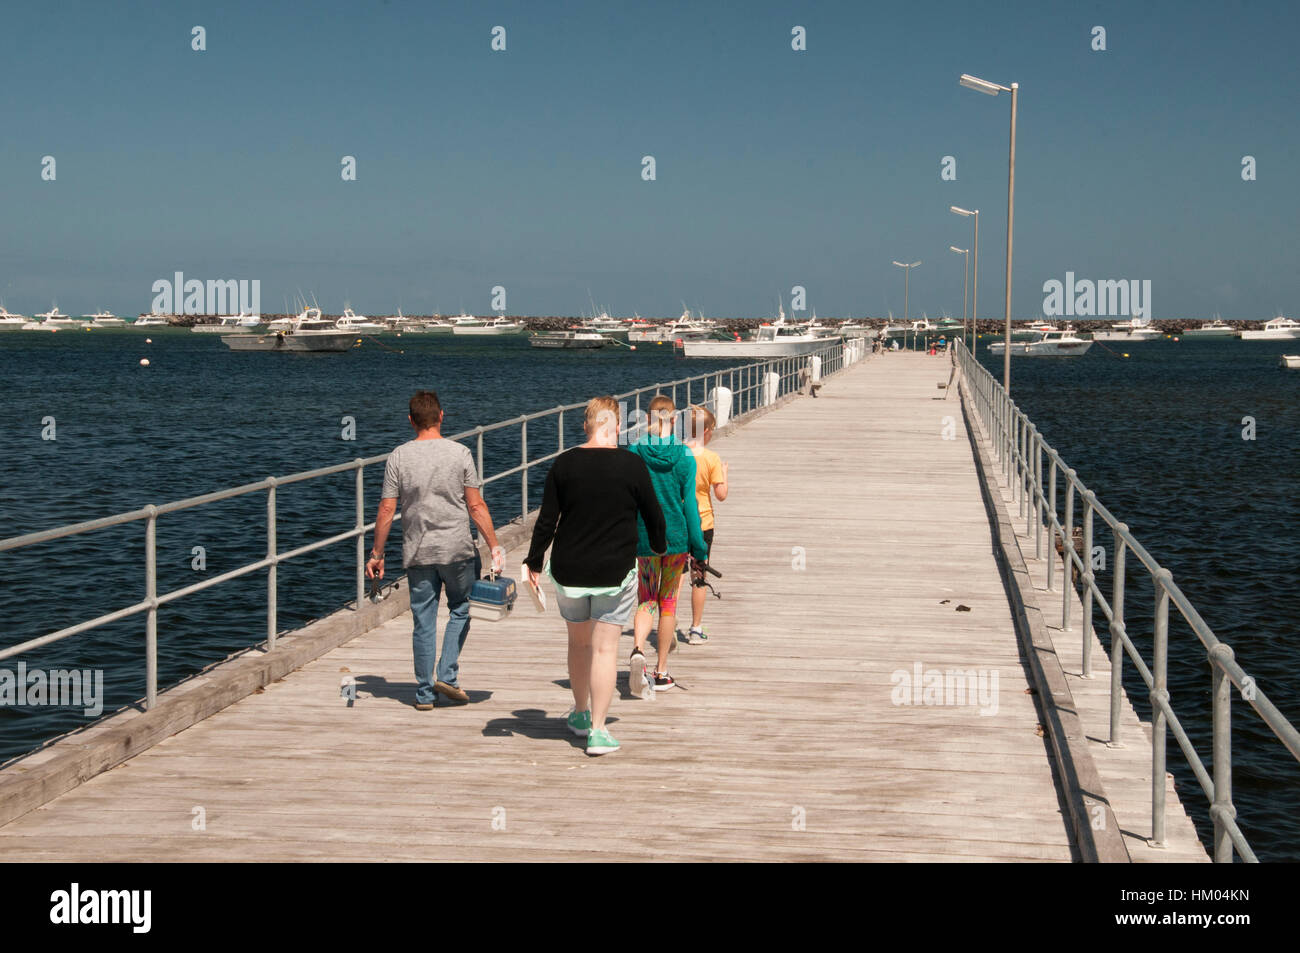 Walking along the pier at the historic fishing town of Port MacDonnell, southeast South Australia - Stock Image